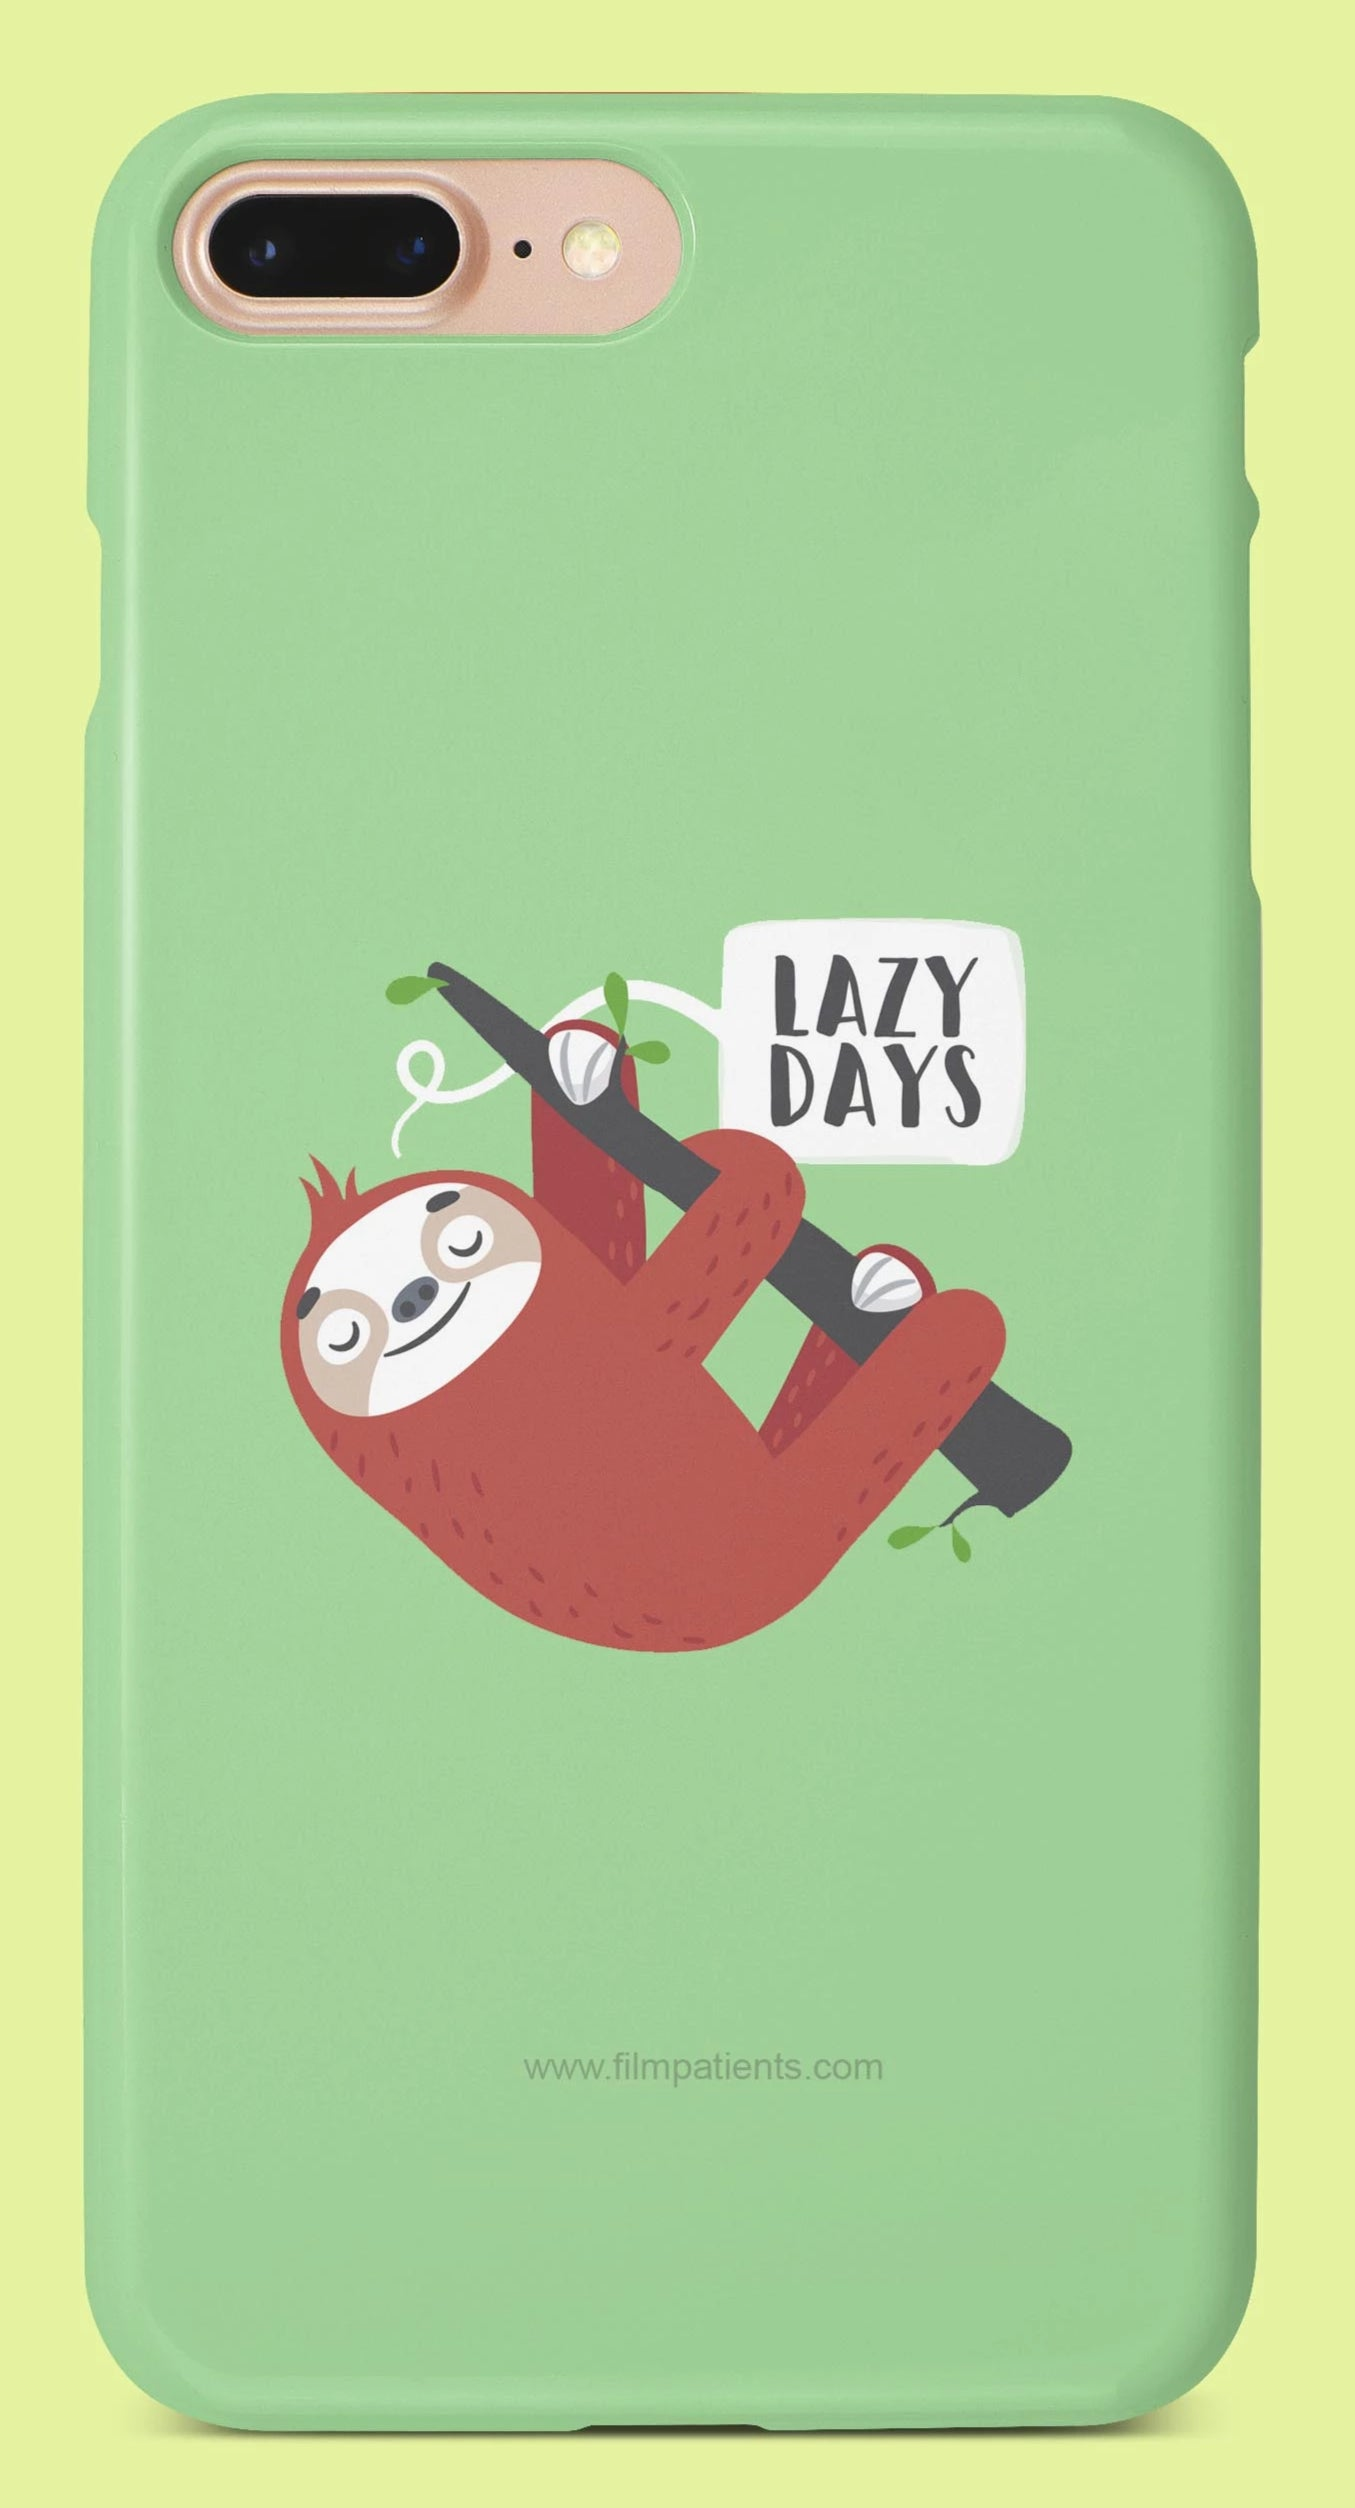 Lazy Days Mobile Cover | Film Patients